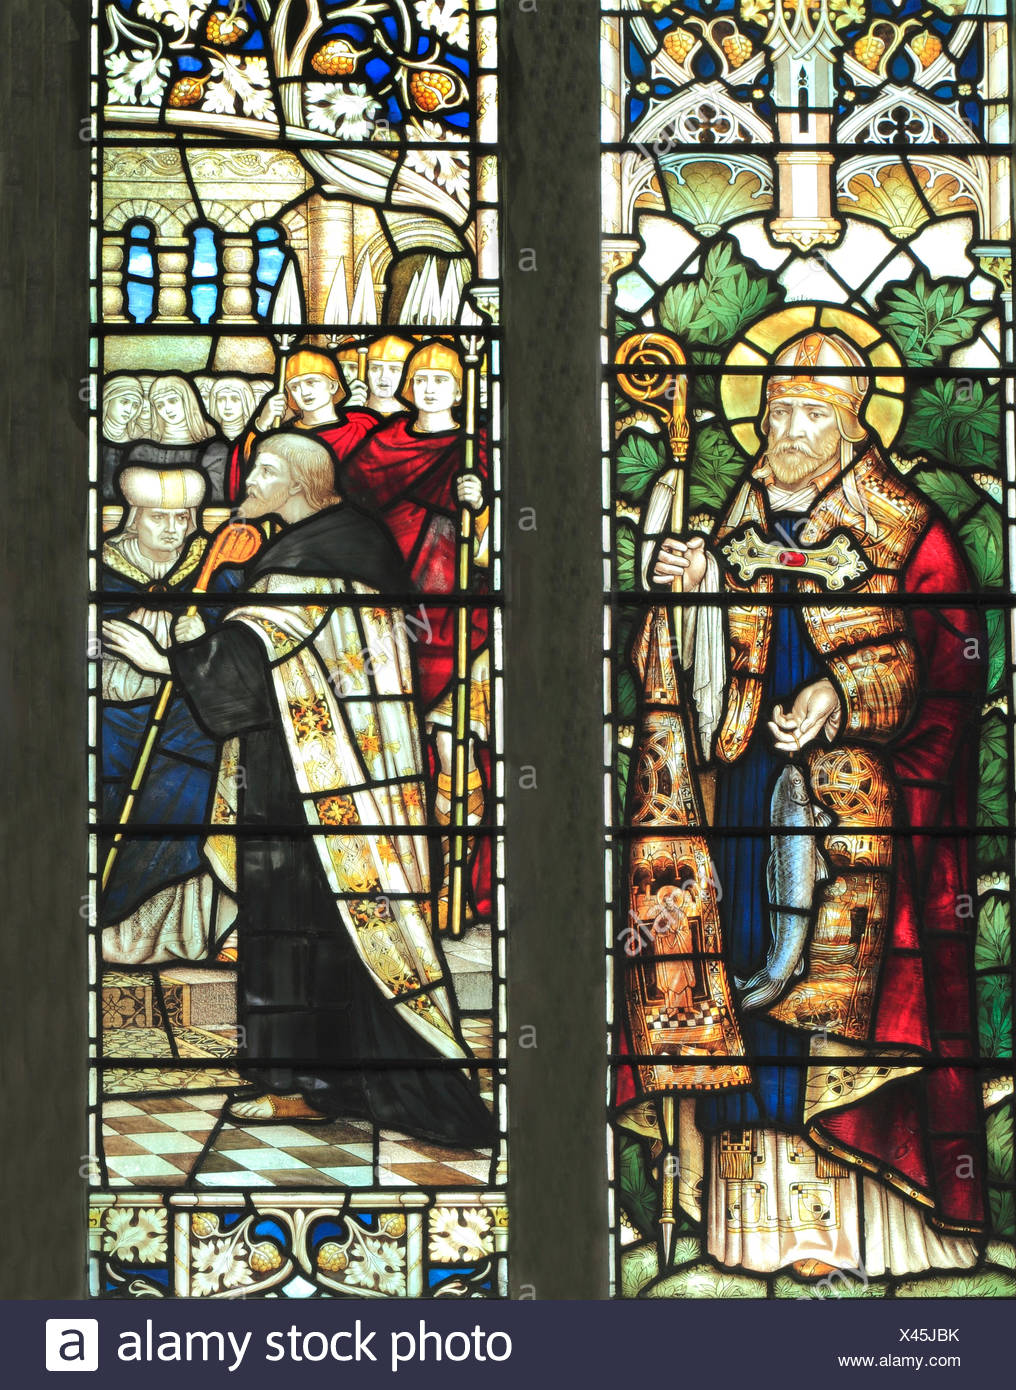 St. Wilfrid, Bishop of Northumbria and Archbishop Theodore of Canterbury, stained glass window by J. Powell & Son, 1900 - Stock Image